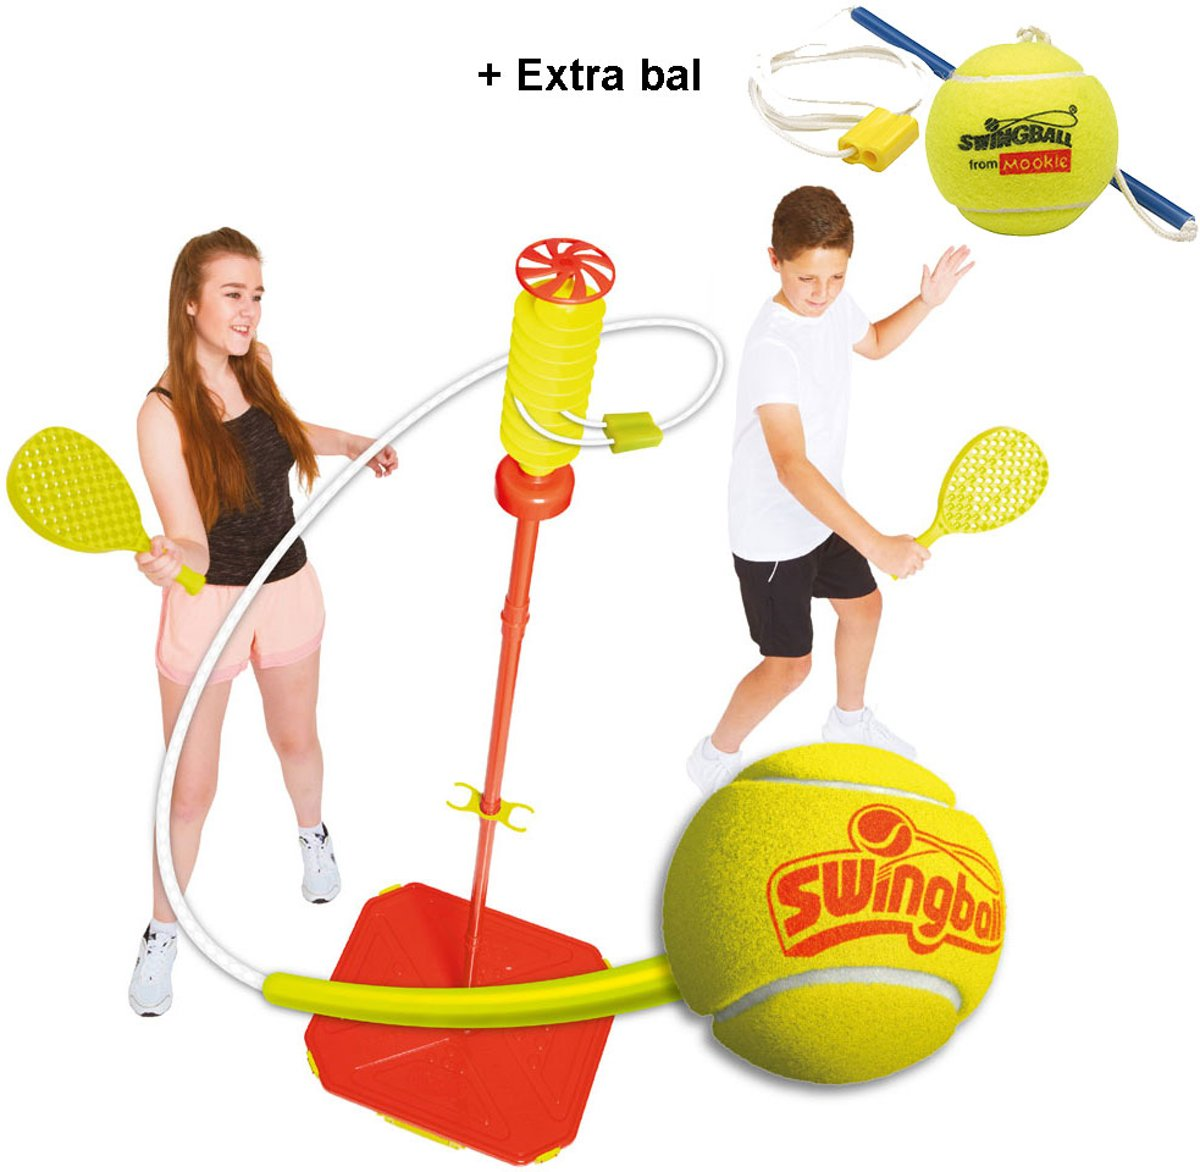 Swingball Classic All Surfaces met extra bal